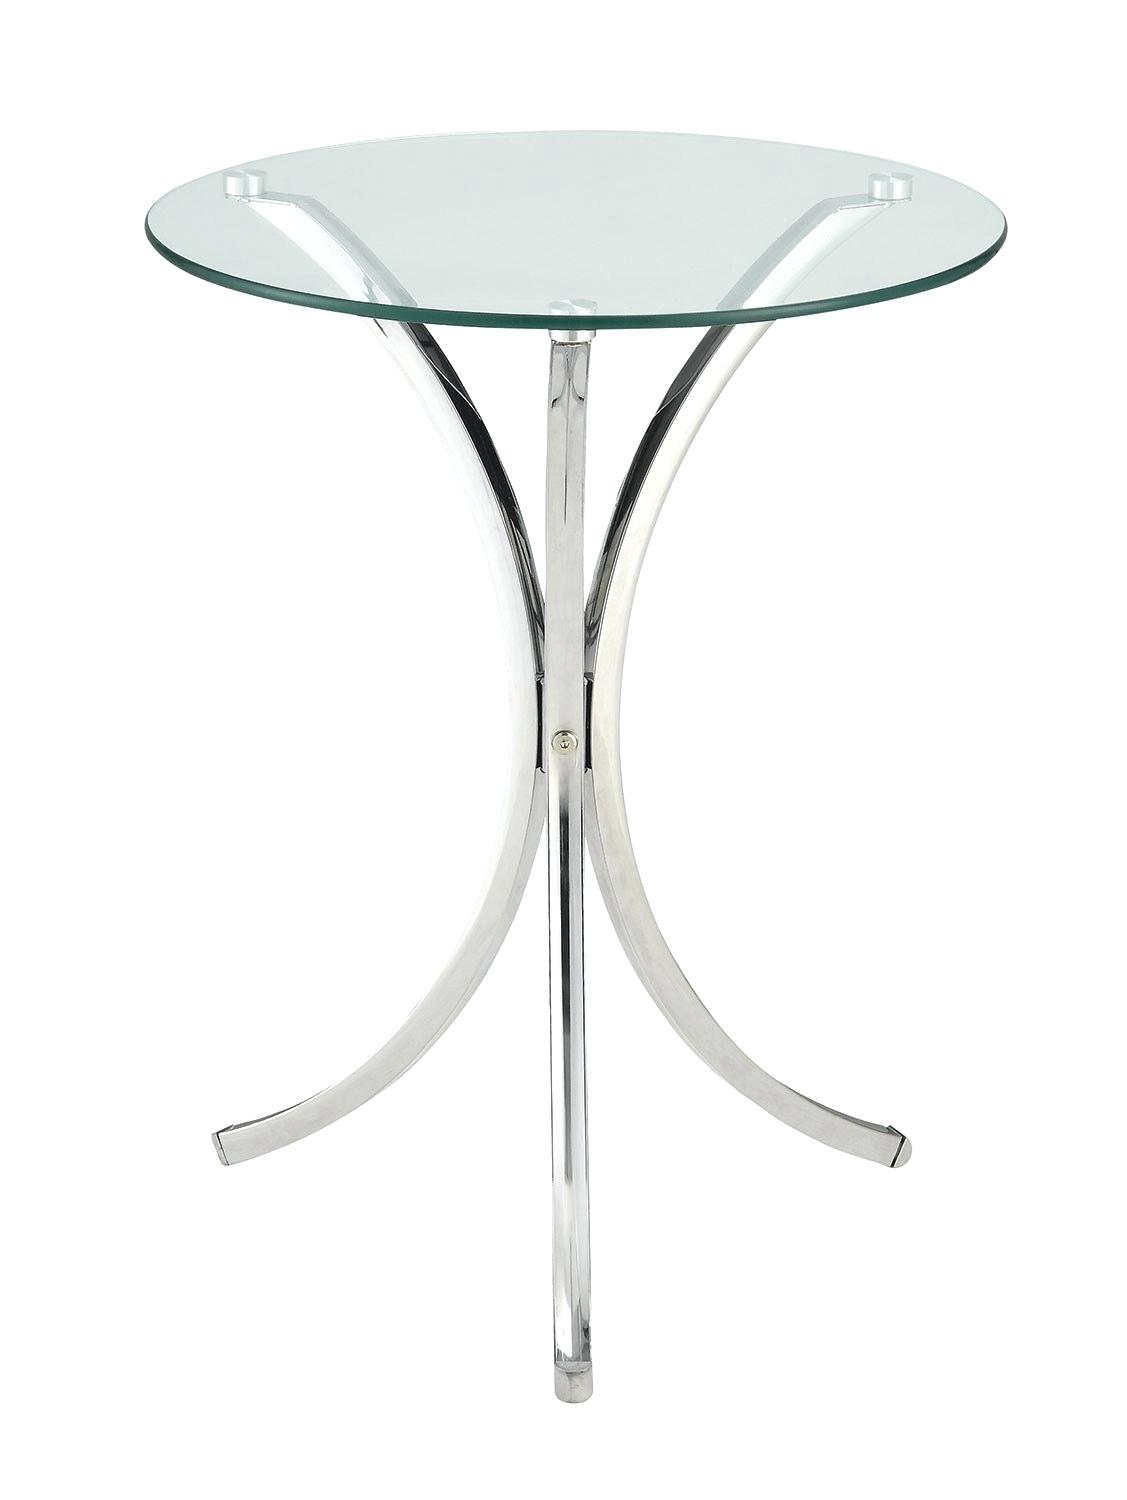 clear accent table fitmitagnes info coaster tables tempered glass fine furniture acrylic zella garden covers target black side metal for living room grey bedroom chair fur